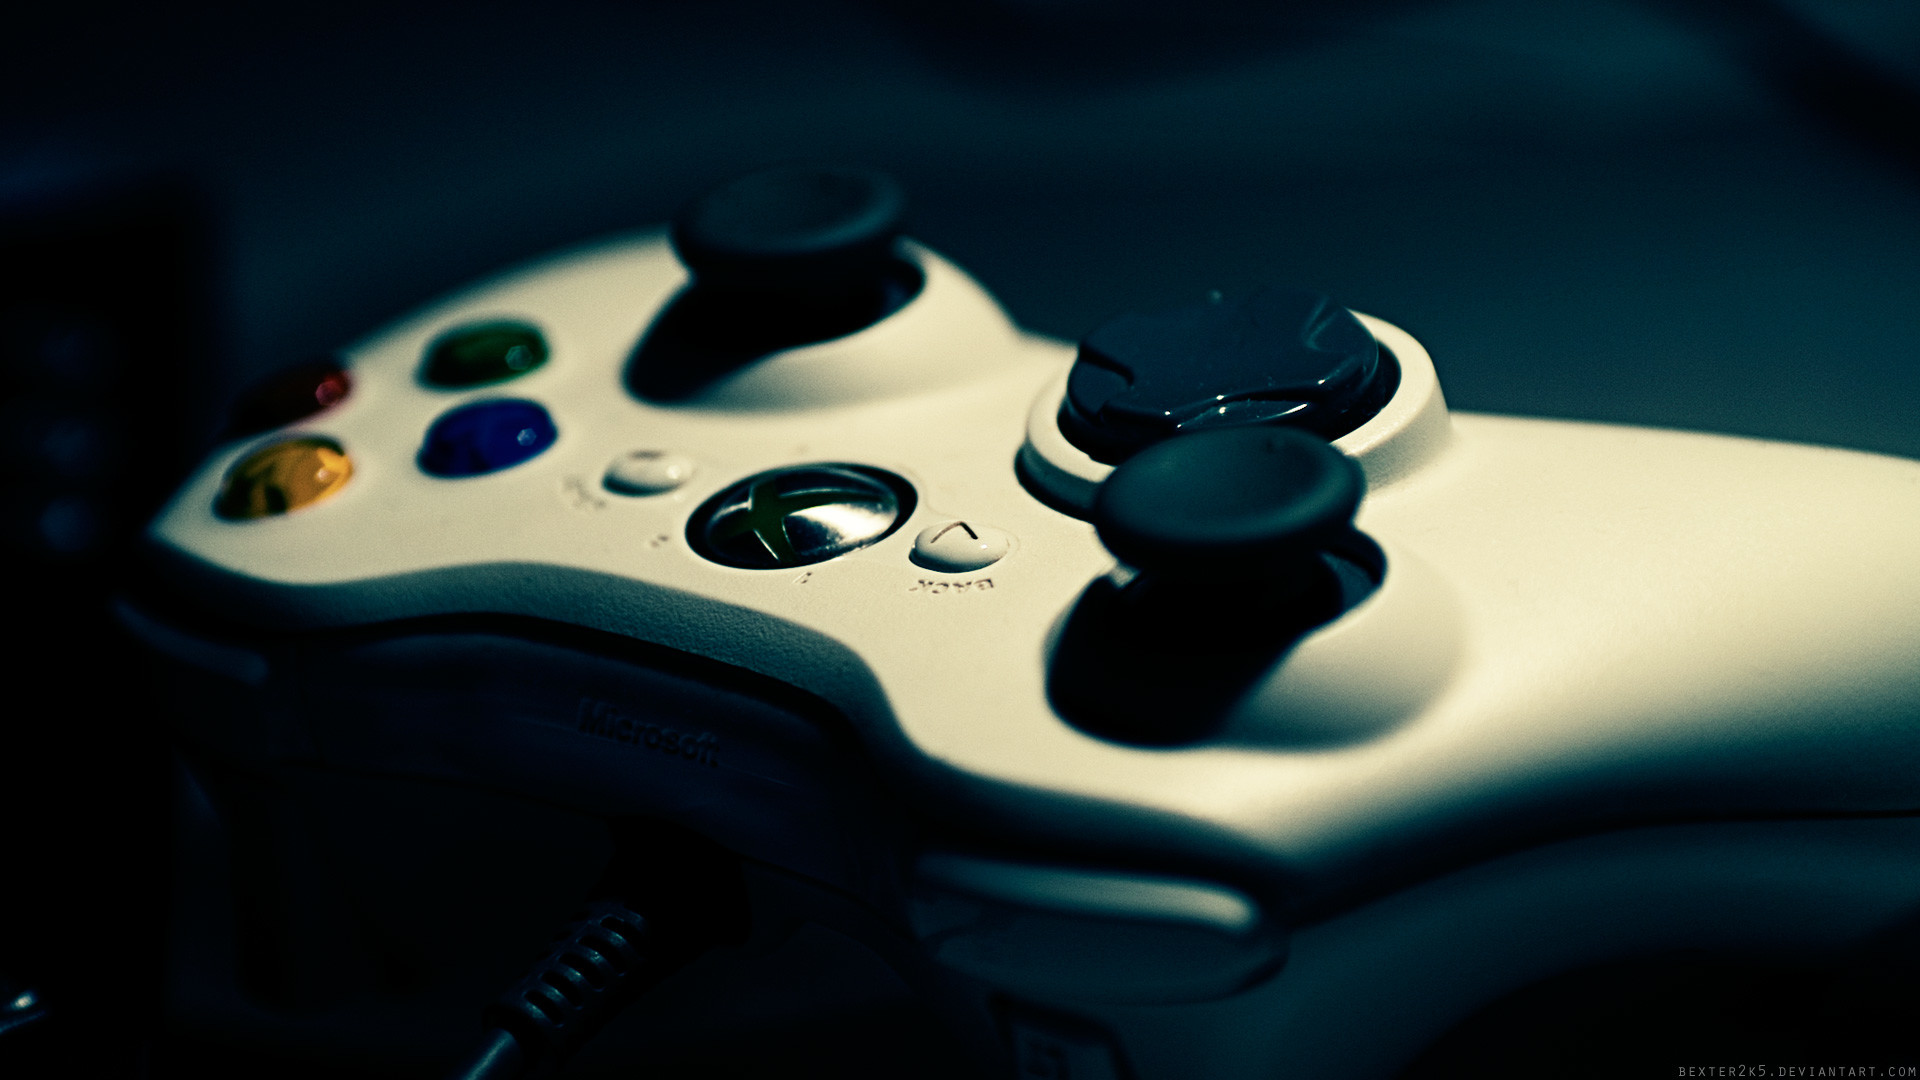 Xbox 360 Game Controller Video Games / Wallpaper Picture on VisualizeUs